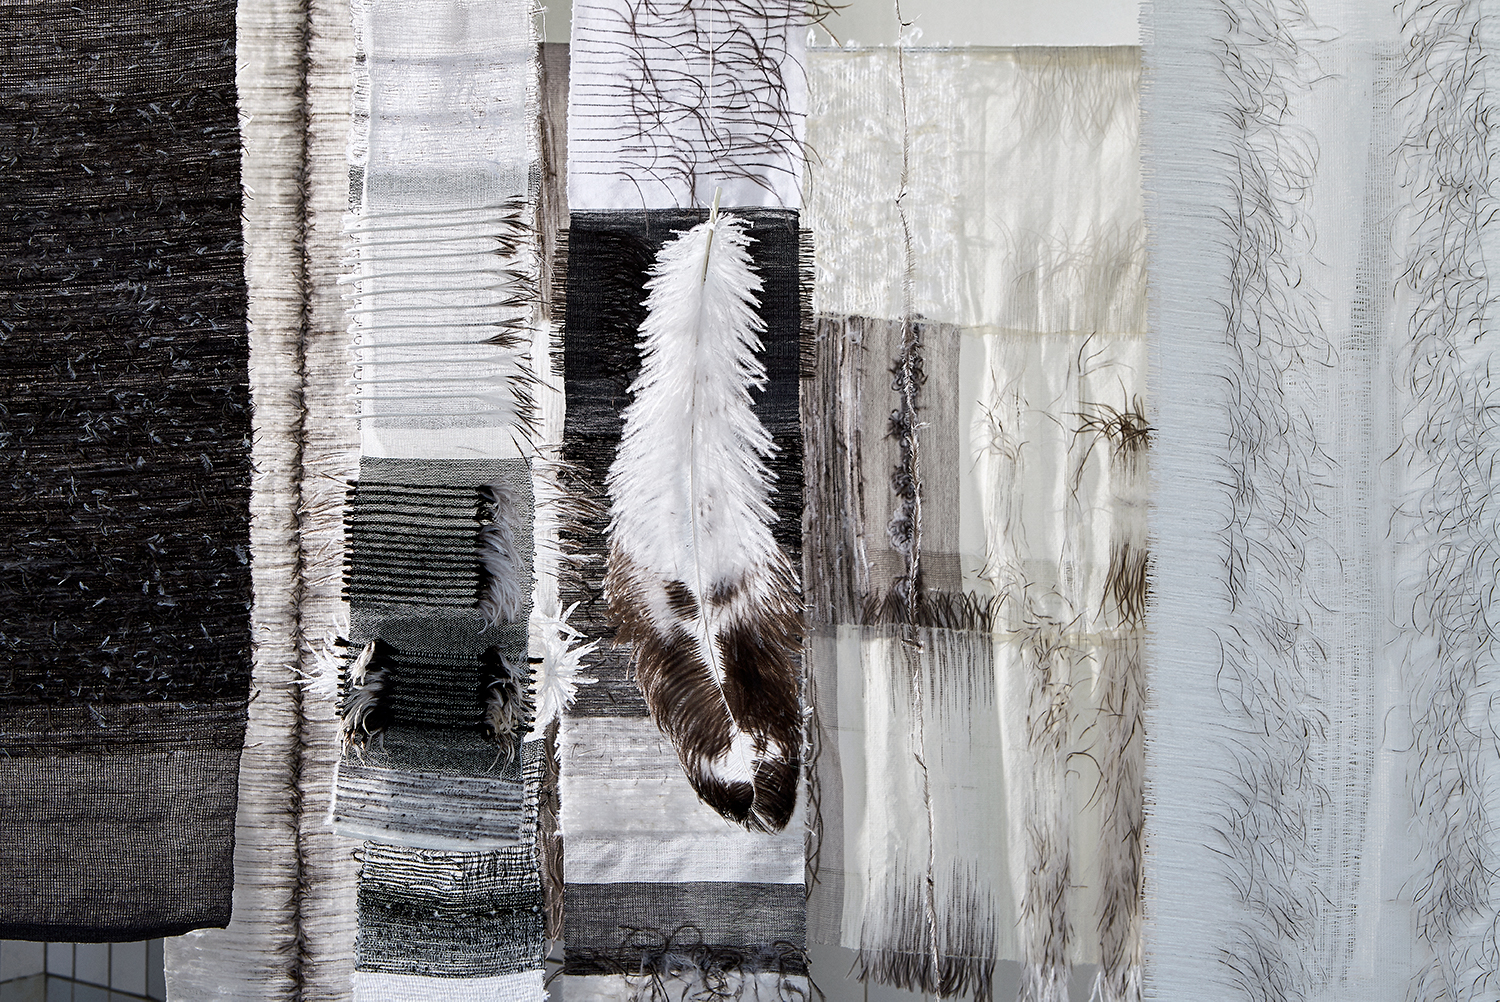 """Feathered Fabrics"" hanging with a single ostrich feather."